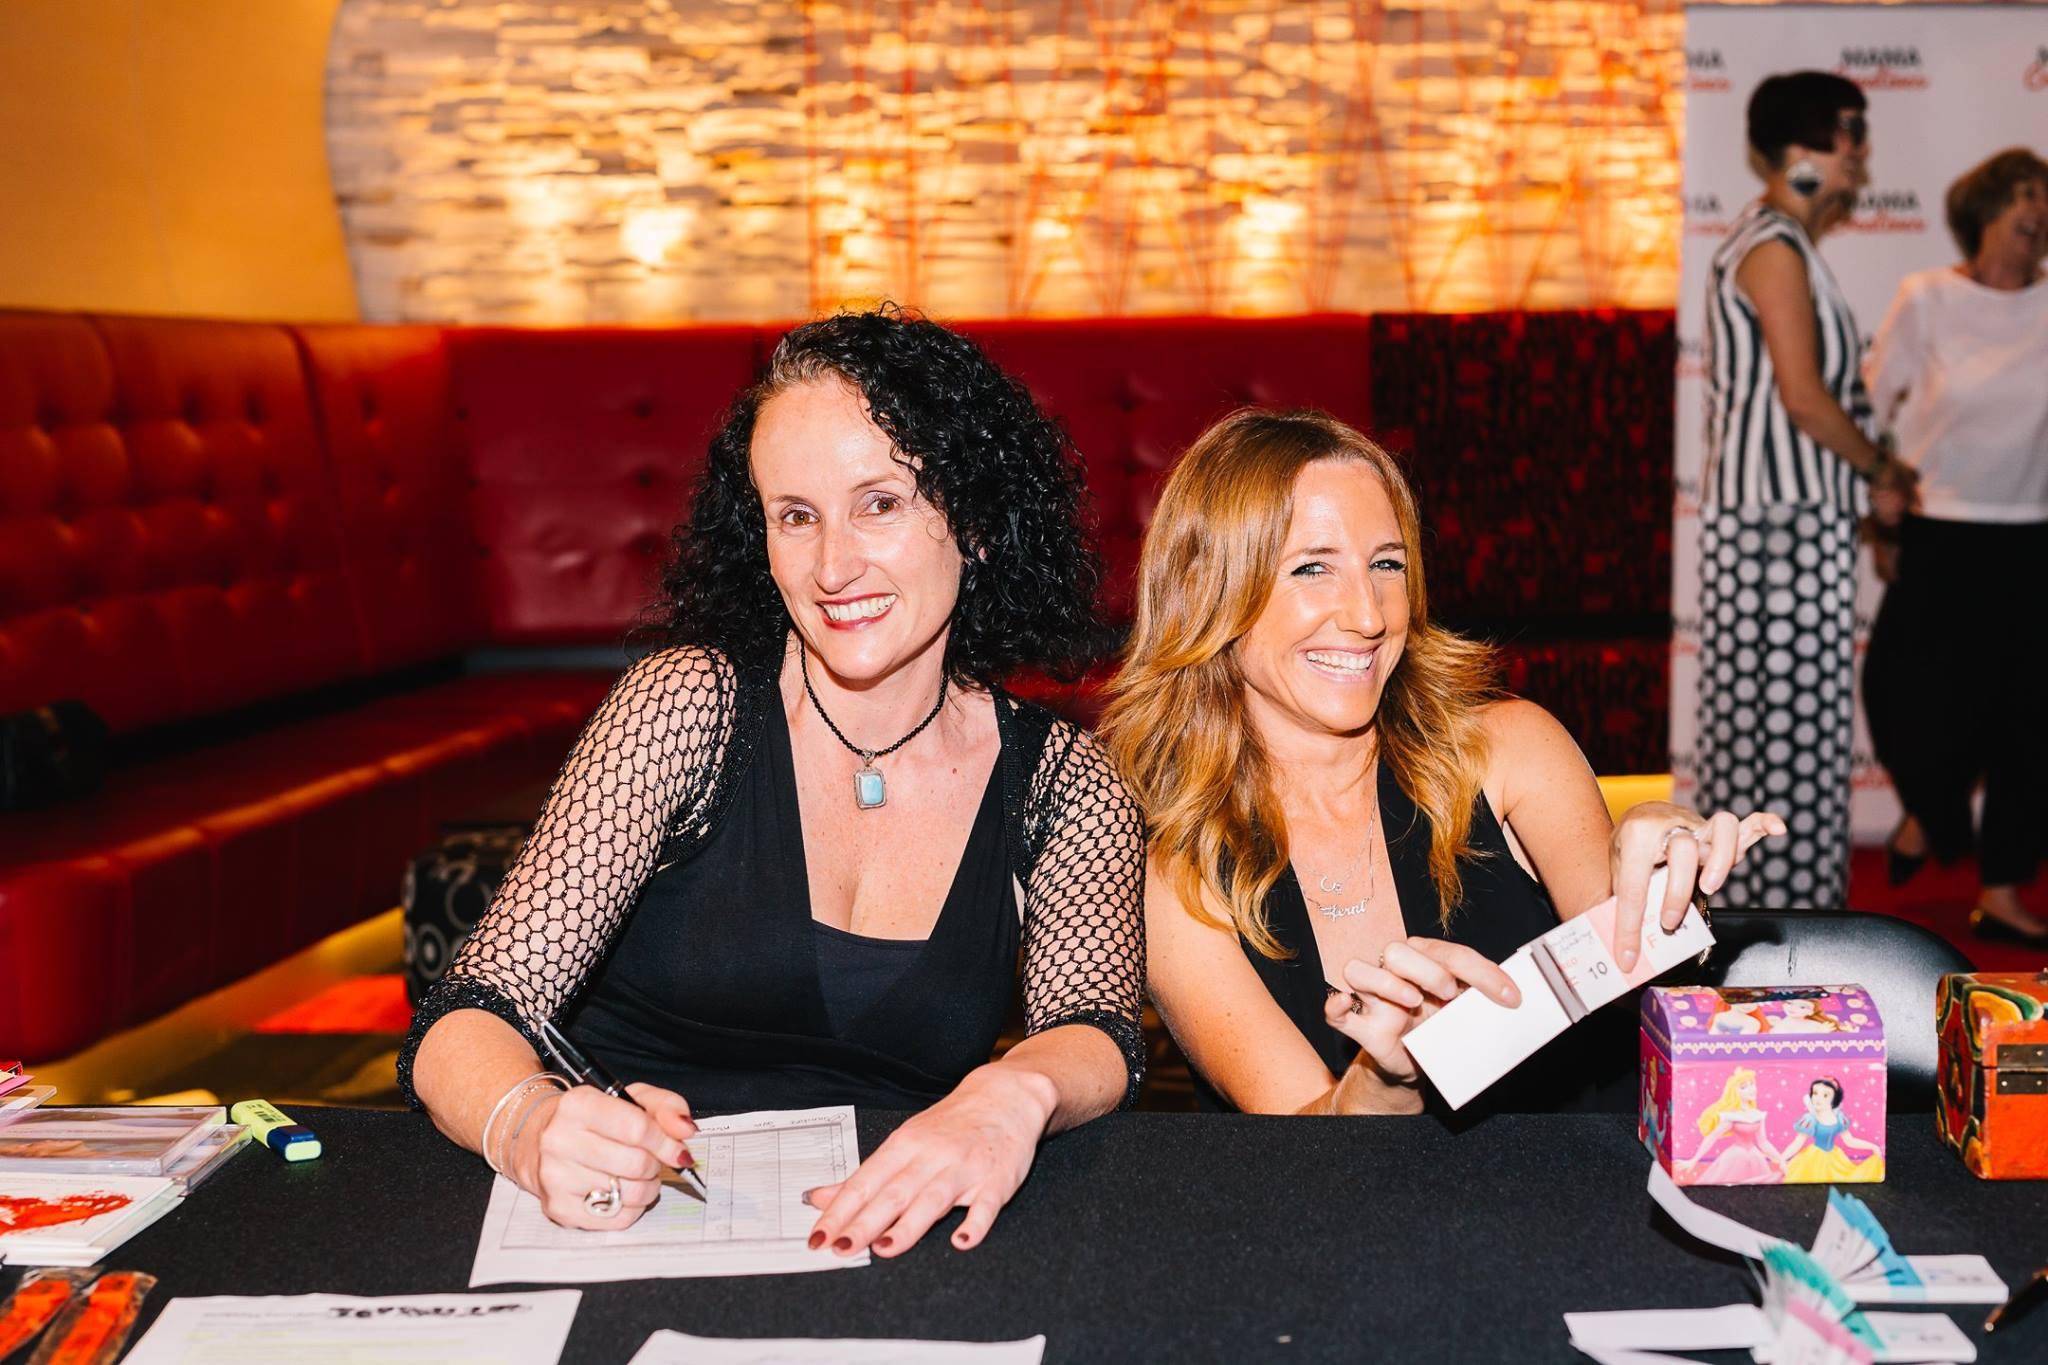 Massive thank you to these two amazing friends who helped check in all the attendees and sell raffle tickets to raise much needed awareness and funds for the wonderful Mitrataa Foundation. We raised $400 — with Sarah Gardan and Fern Madden.